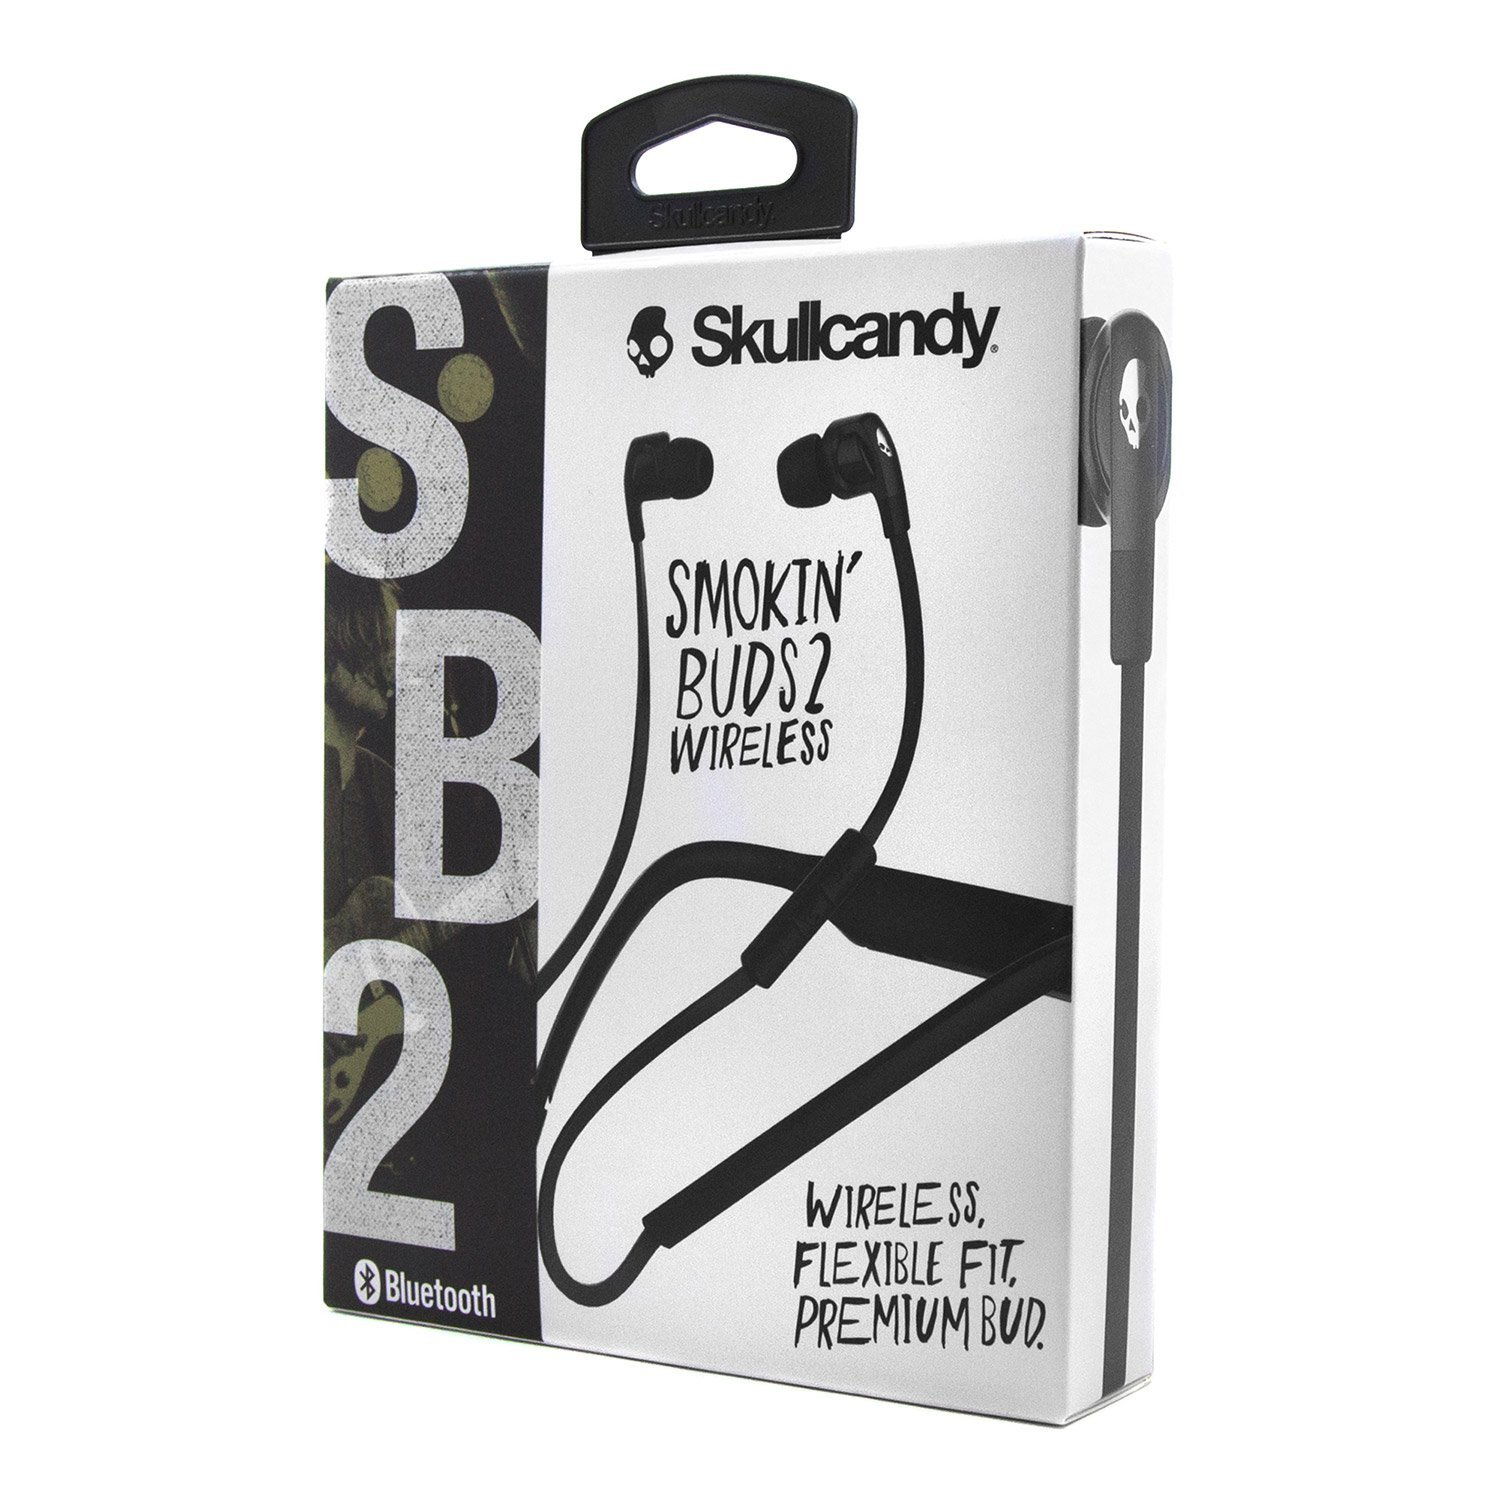 Skullcandy-Smokin-039-Buds-2-in-Ear-Bluetooth-Wireless-Earbuds-with-Microphone-New thumbnail 19